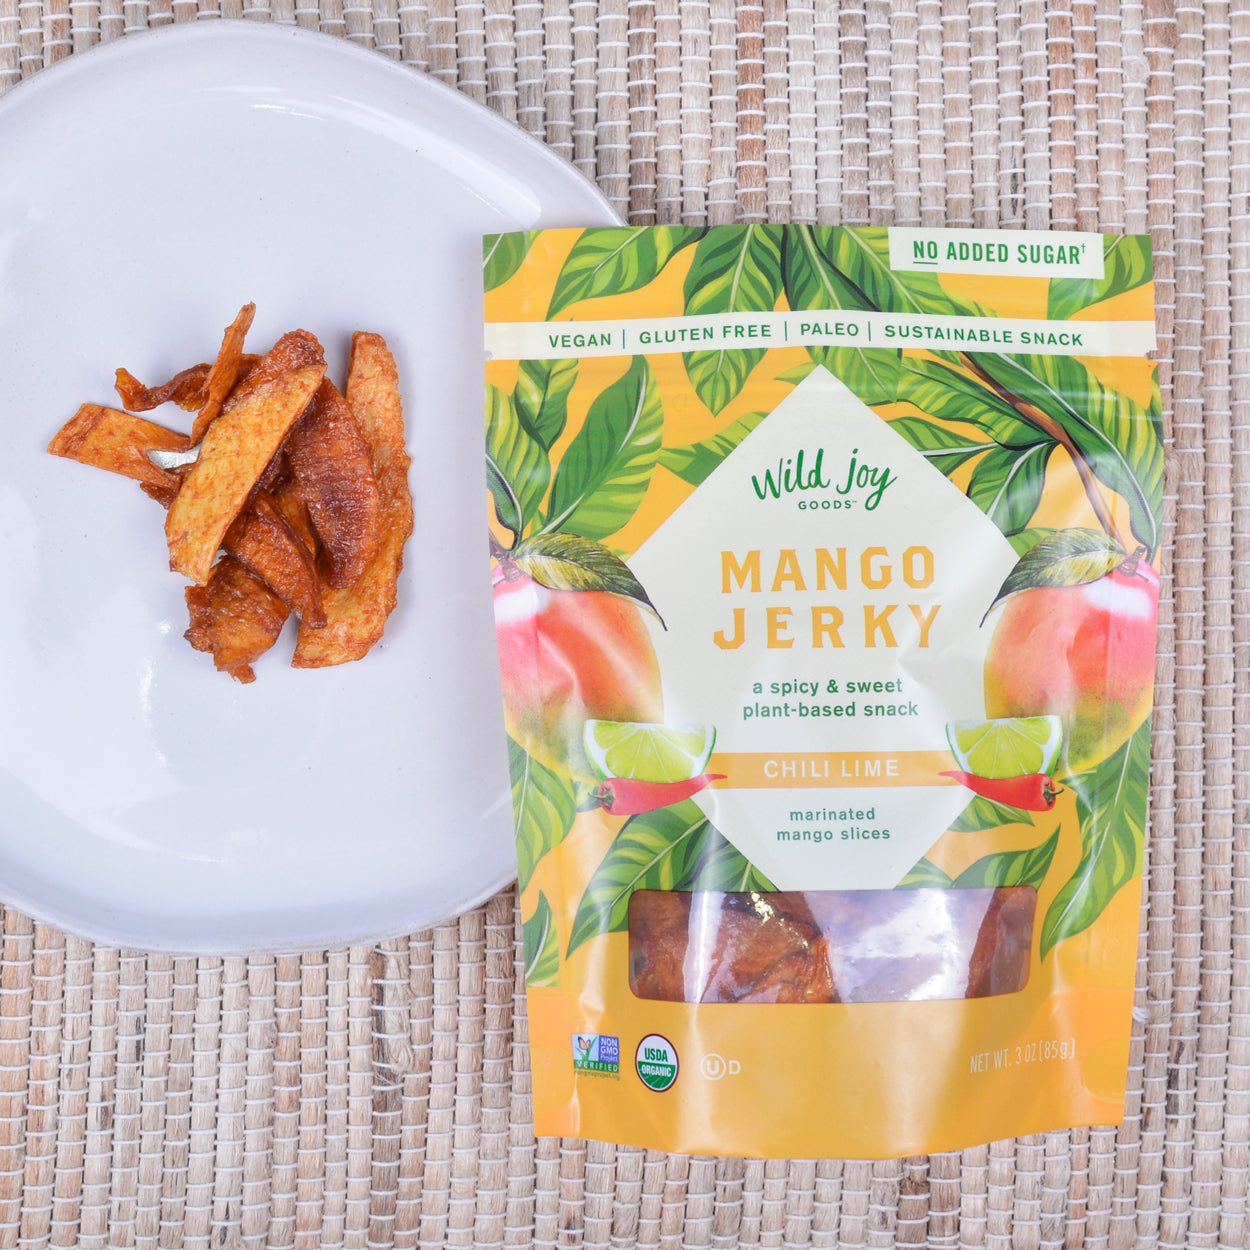 Mango Jerky Chili Lime